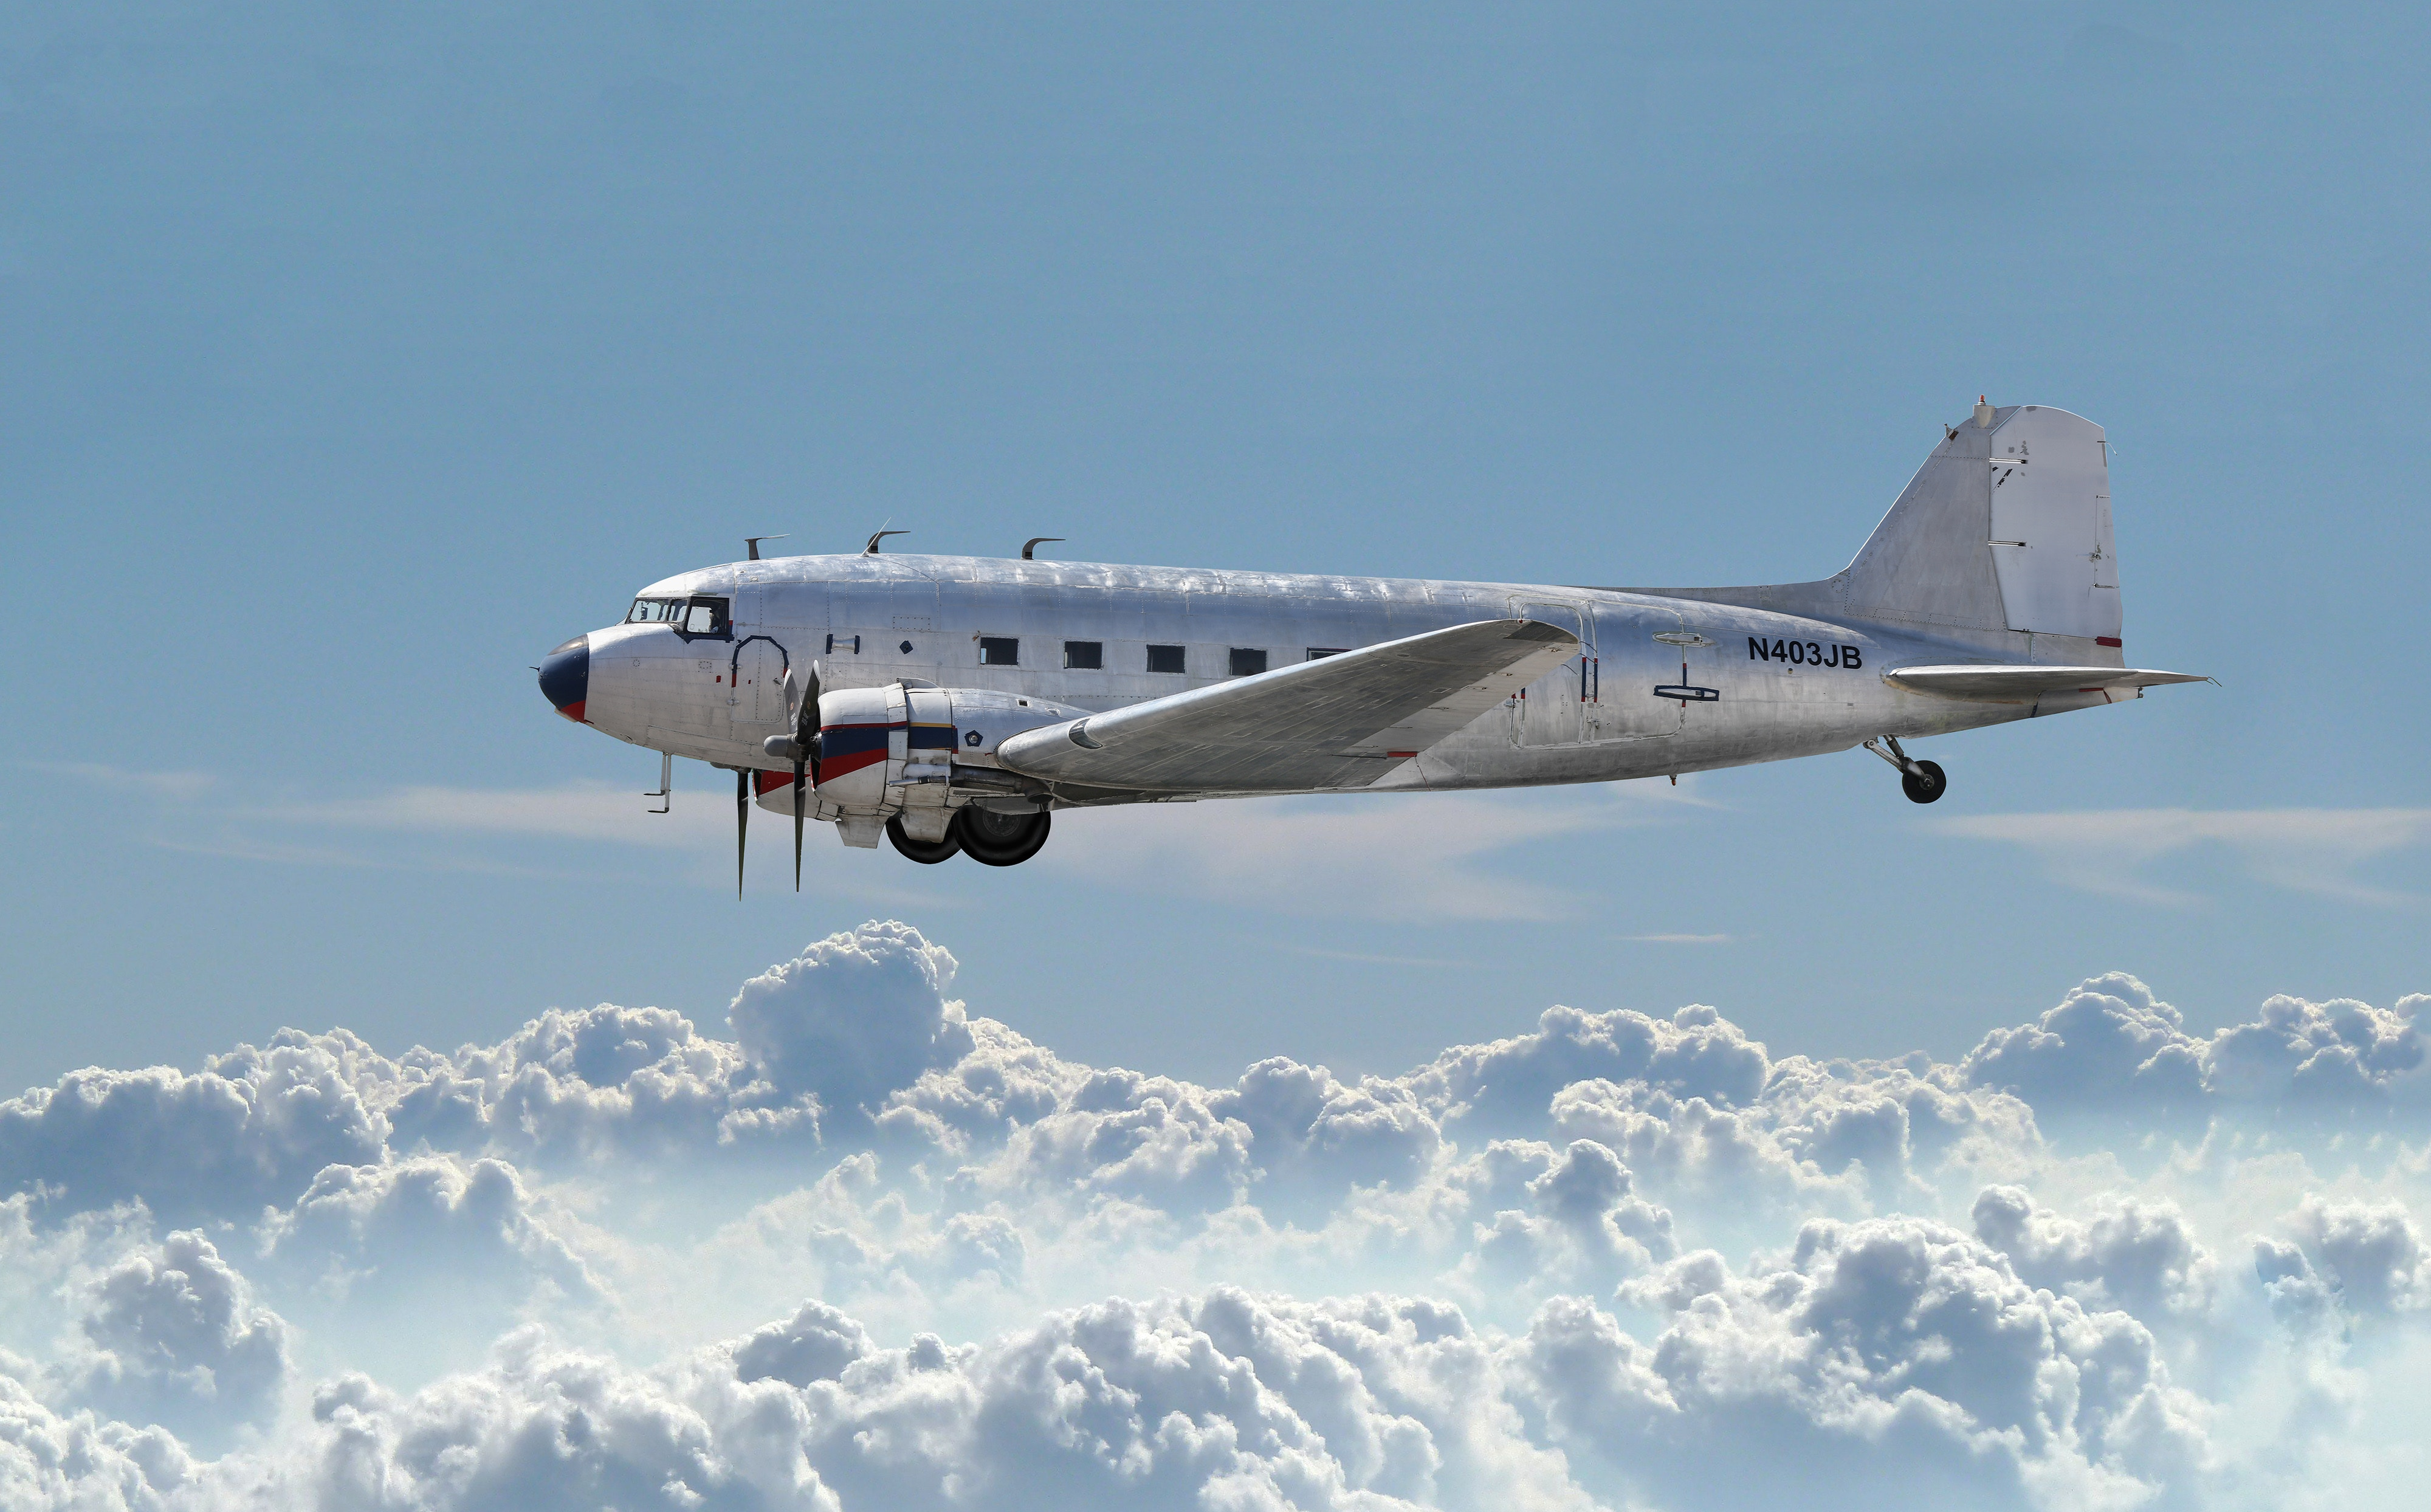 And aircraft in flight